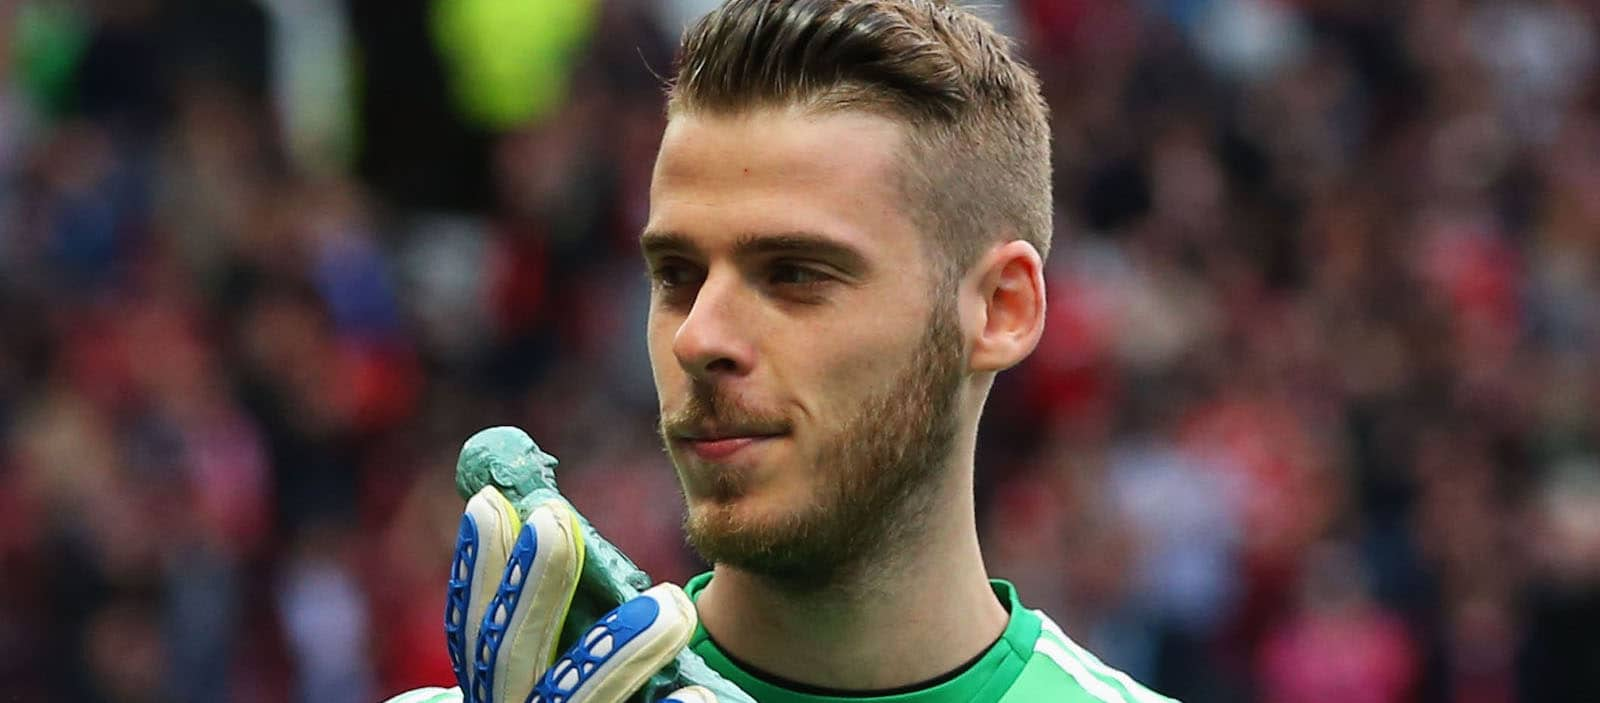 Louis van Gaal unhappy after David de Gea denied Golden Glove award